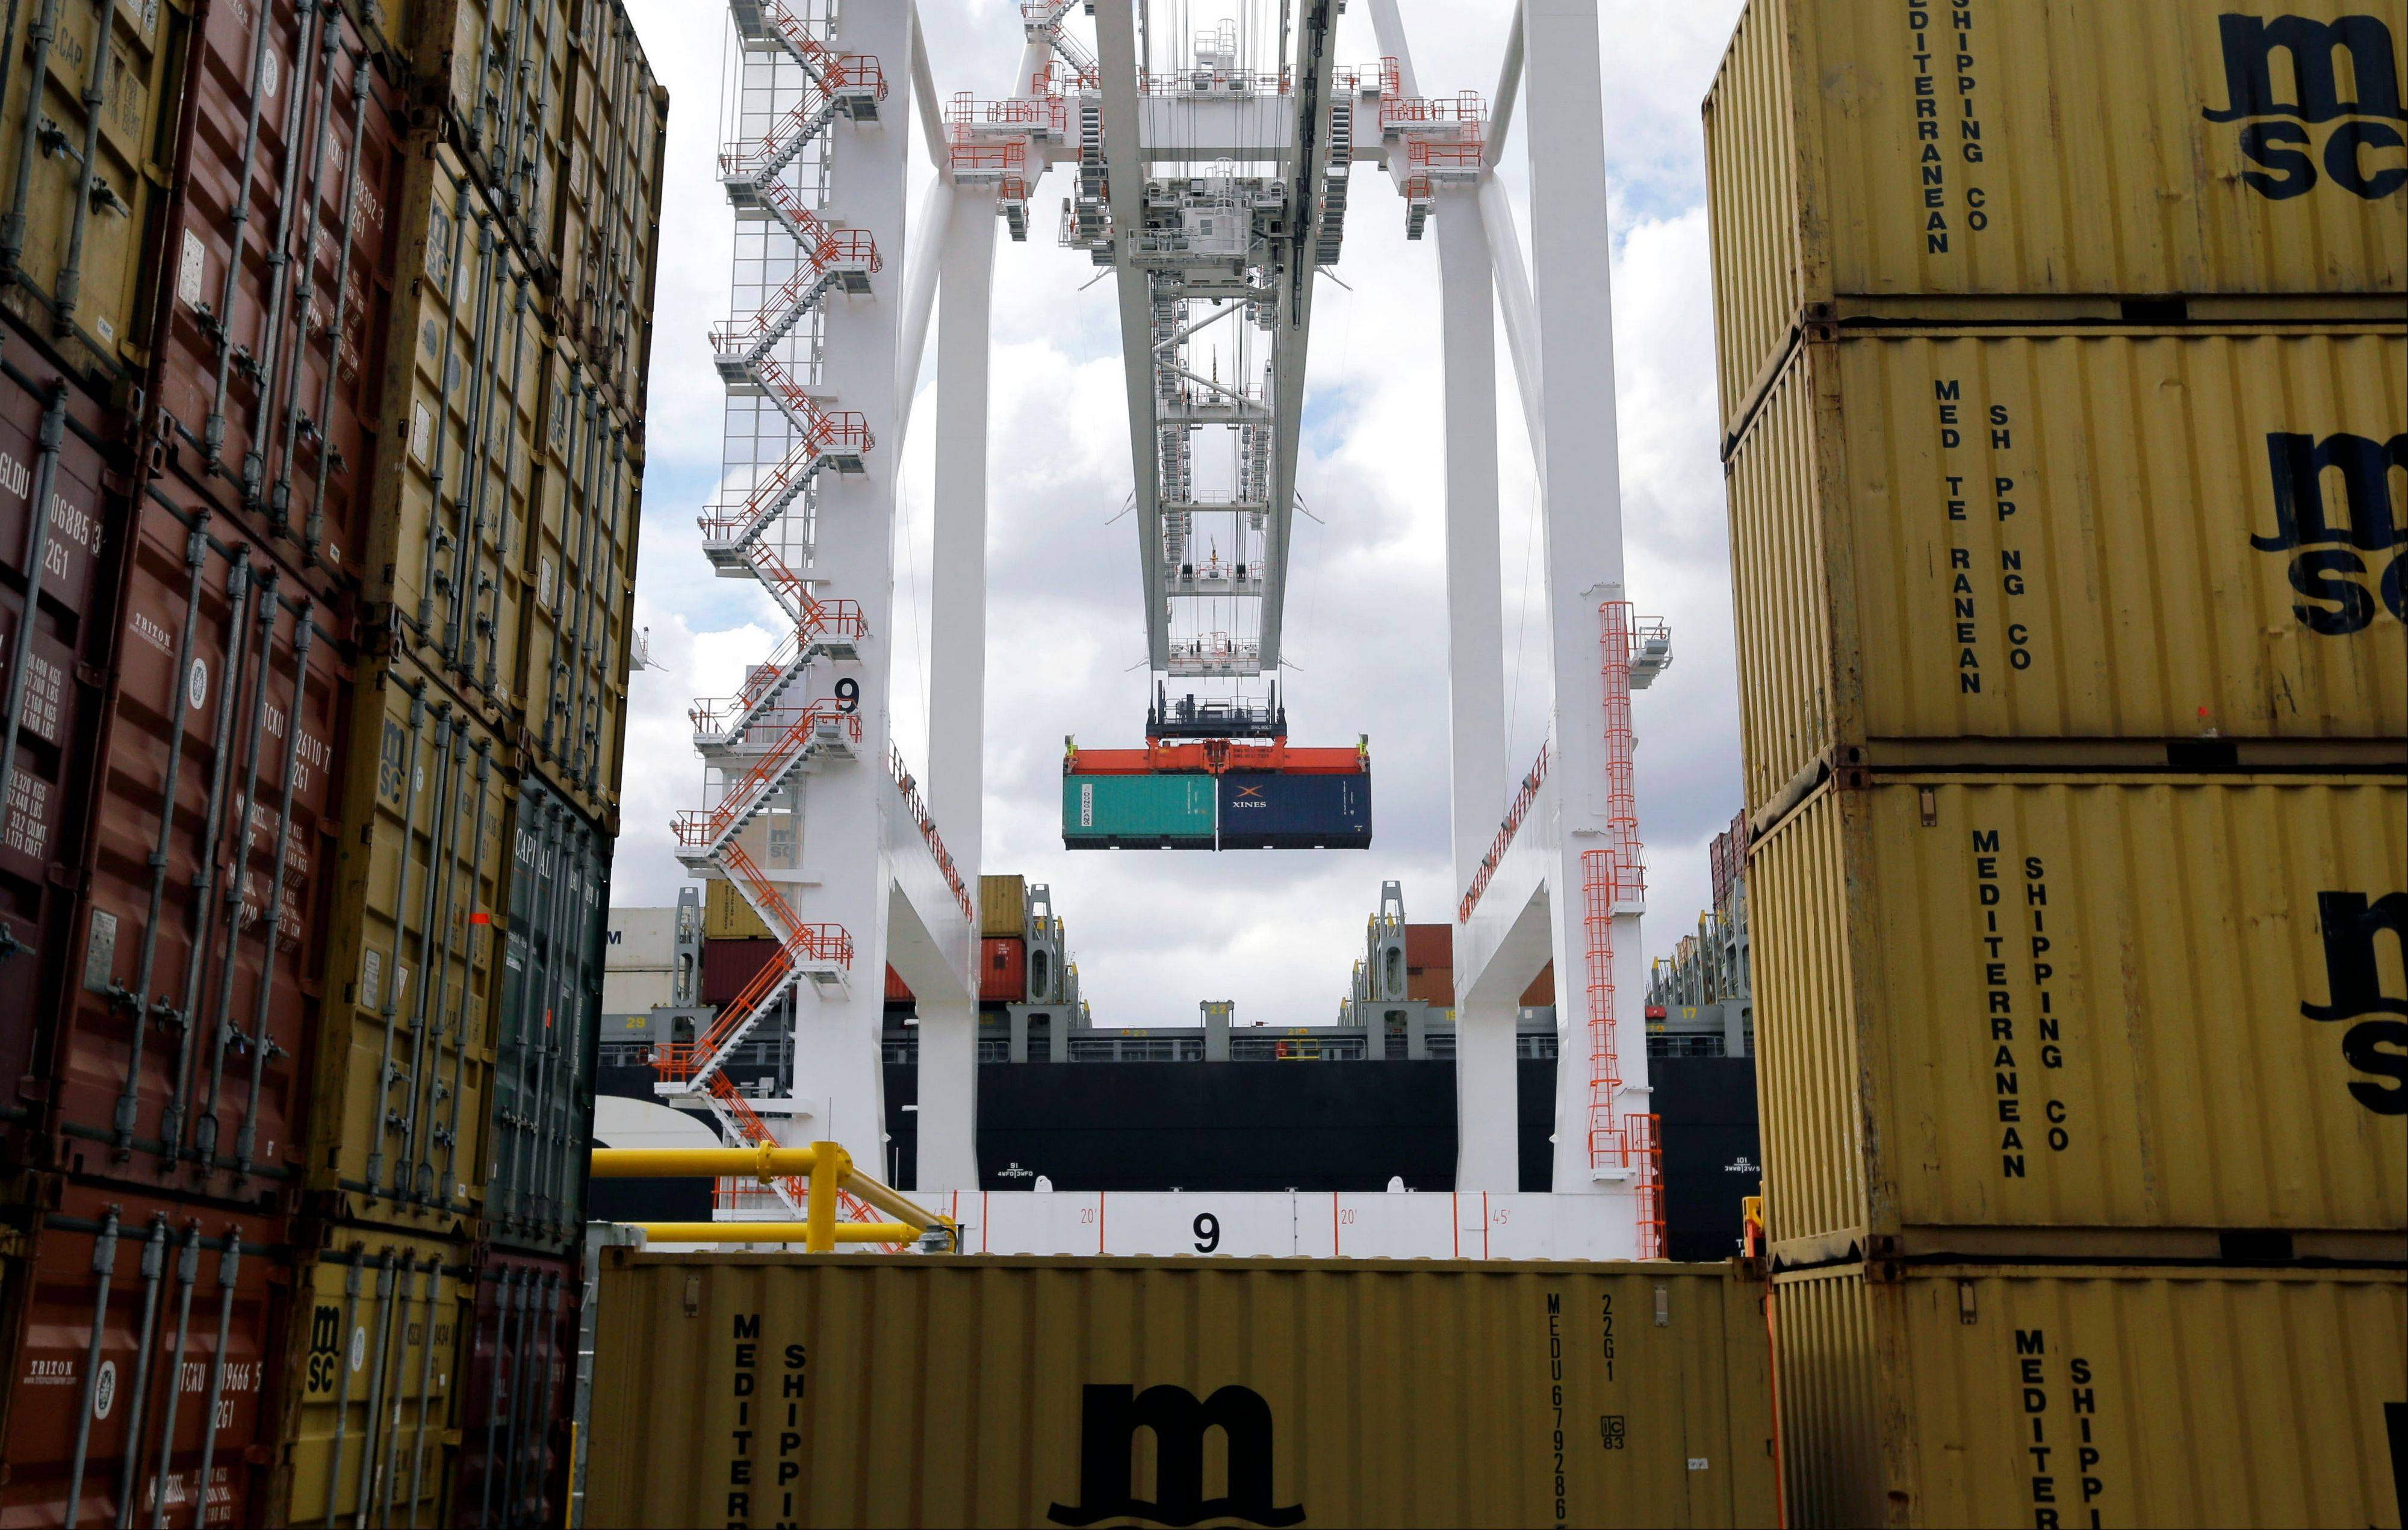 A crane removes a container from a ship at the Port of Baltimore�s Seagirt Marine Terminal in Baltimore. The U.S. trade deficit widened in April, as demand for foreign cars, cell phones and other imported goods outpaced growth in U.S. exports.